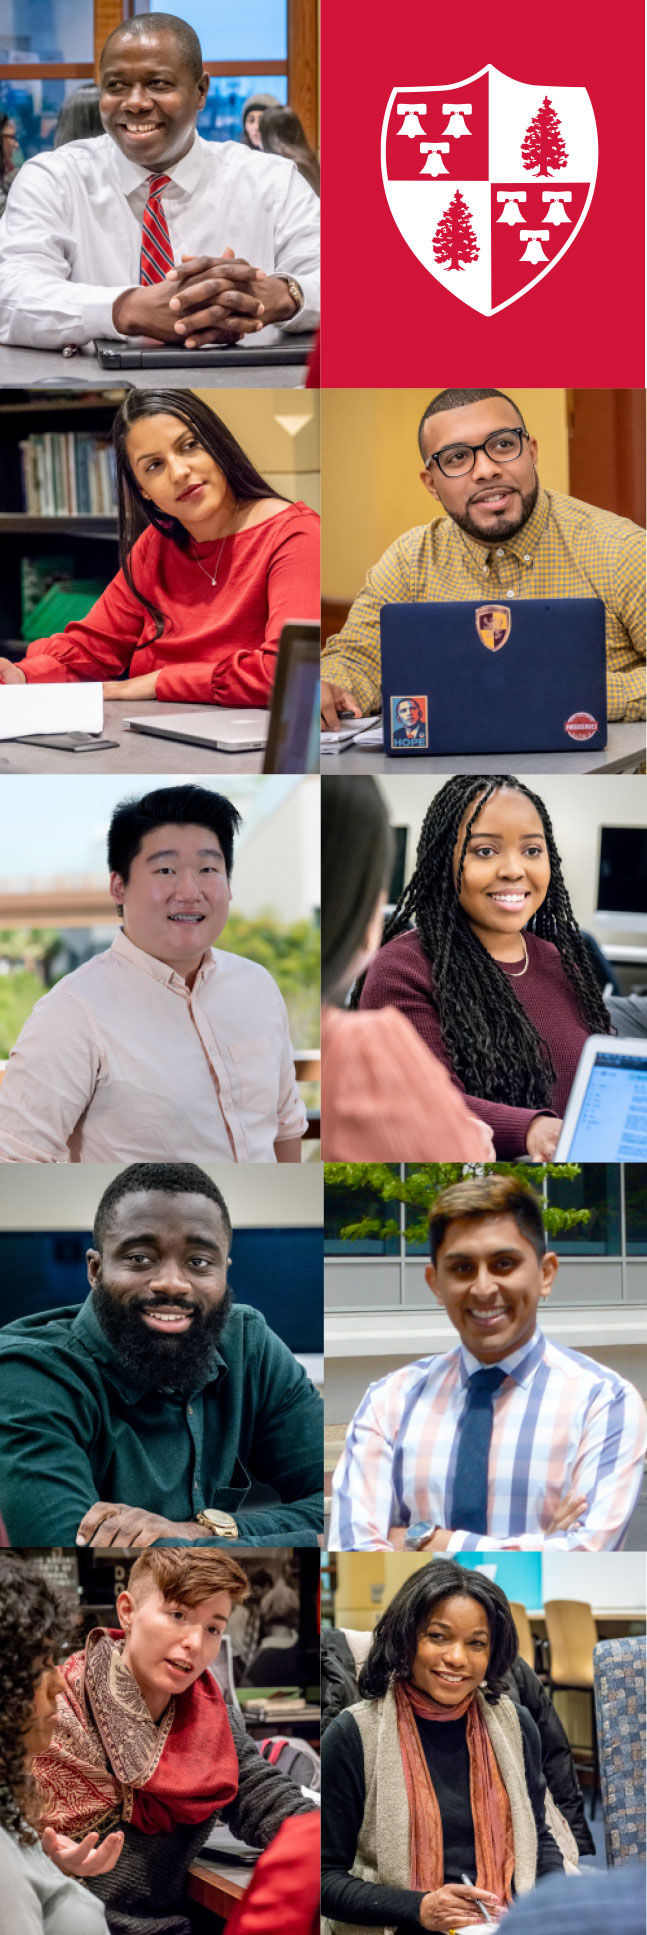 Graduates of the Educational Leadership master's program include (top to bottom, left) Peter Osebre '19, Natalie Lopez '19, Lucas Min '18, Kevin Brenfo-Agyeman '19, Jessy Cocciolone '19, (top to bottom, right) Claudio Alejo '19, Chelsea Rushing '19, Dann Truitt '14, '19 MA and Lynda Gary-Davidson '20.